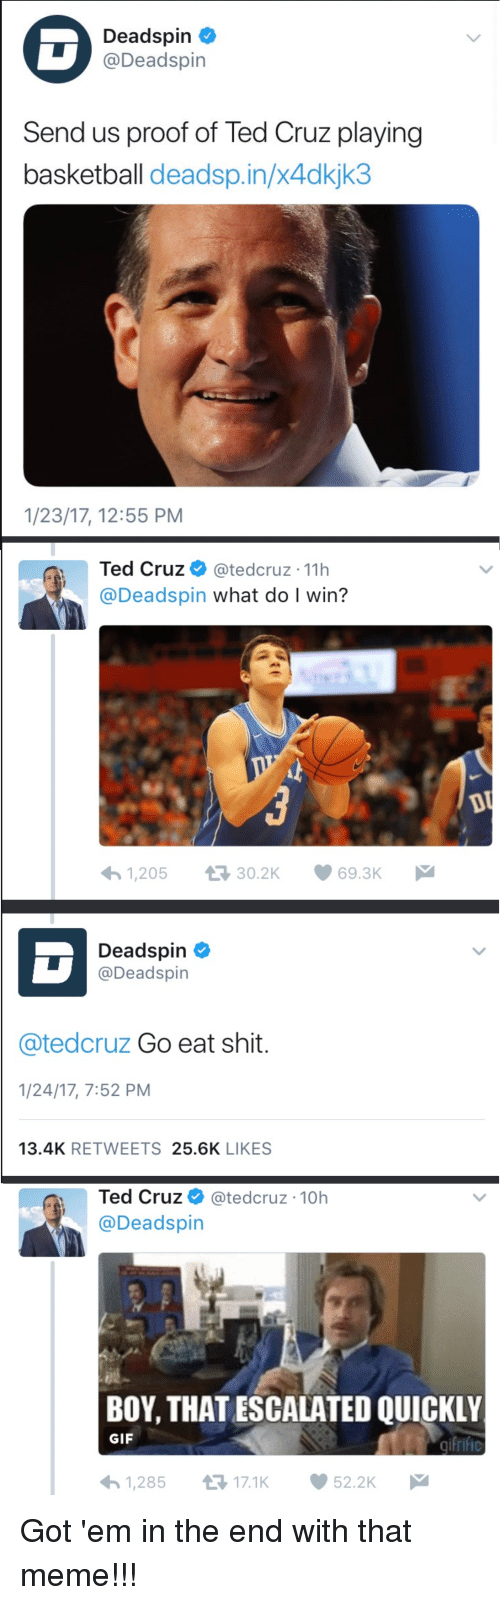 Basketball, Gif, and Meme: Deadspin  @Deadspin  Send us proof of Ted Cruz playing  basketball deadsp.in/x4dkjk3  1/23/17, 12:55 PM  Ted Cruz @tedcruz 11h  @Deadspin what do I win?  1,20530.2K 69.3K  Deadspin  @Deadspin  @tedcruz Go eat shit.  1/24/17, 7:52 PM  13.4K RETWEETS 25.6K LIKES  Ted Cruz @tedcruz-10h  @Deadspin  BOY, THATESCALATED QUICKLY  GIF  1,28517.1K  52.2K